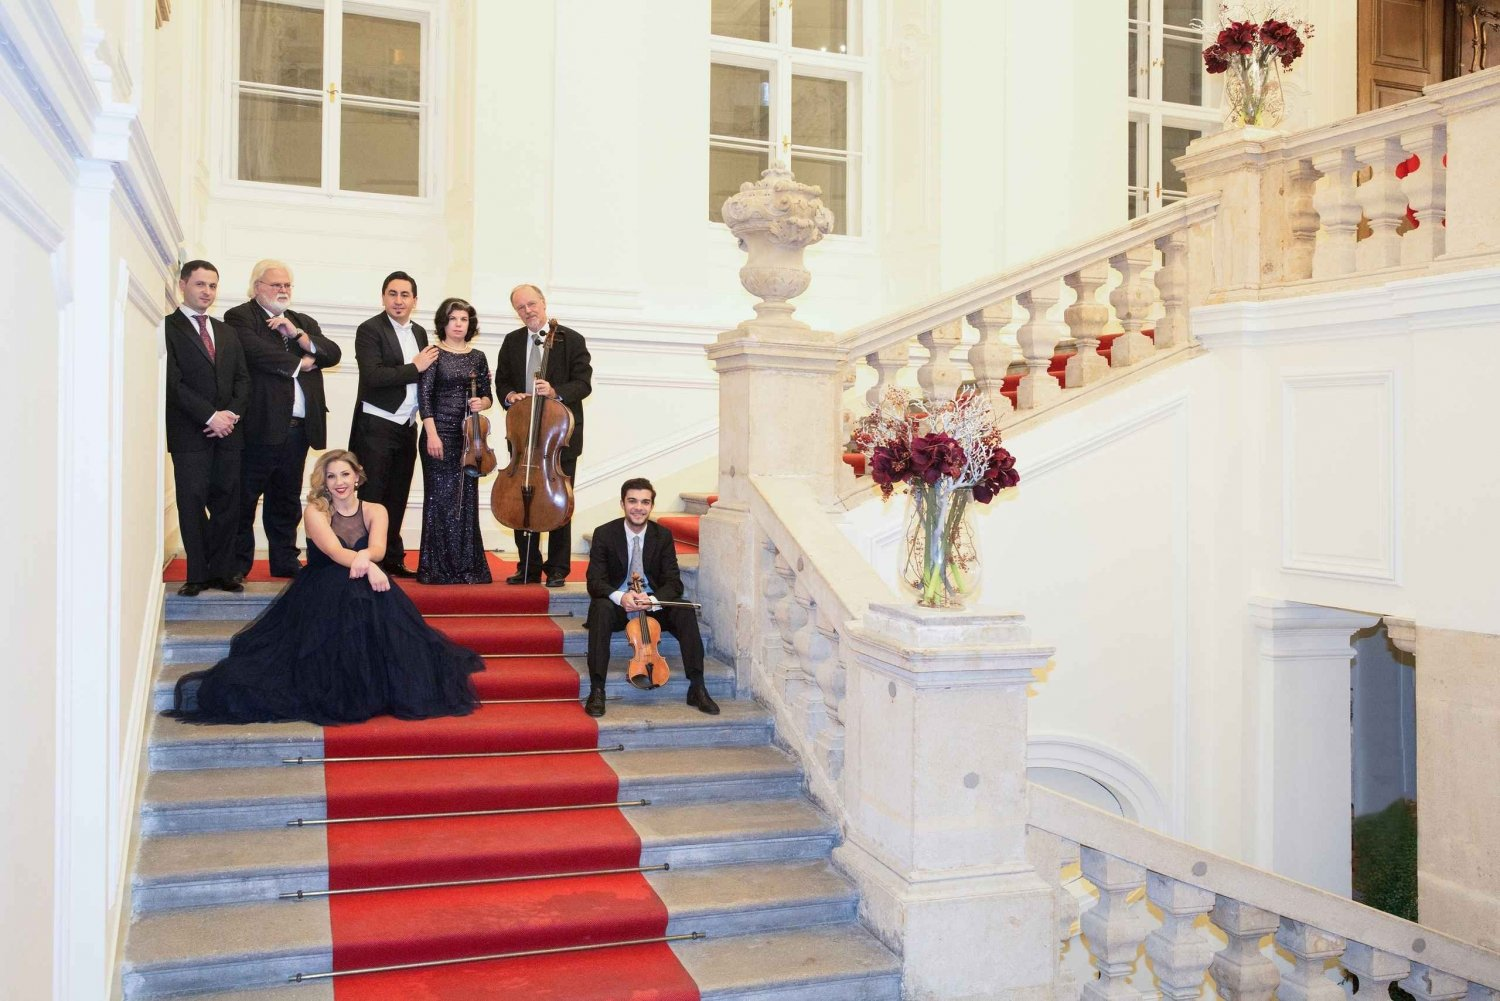 Concert by the Vienna Baroque Orchestra